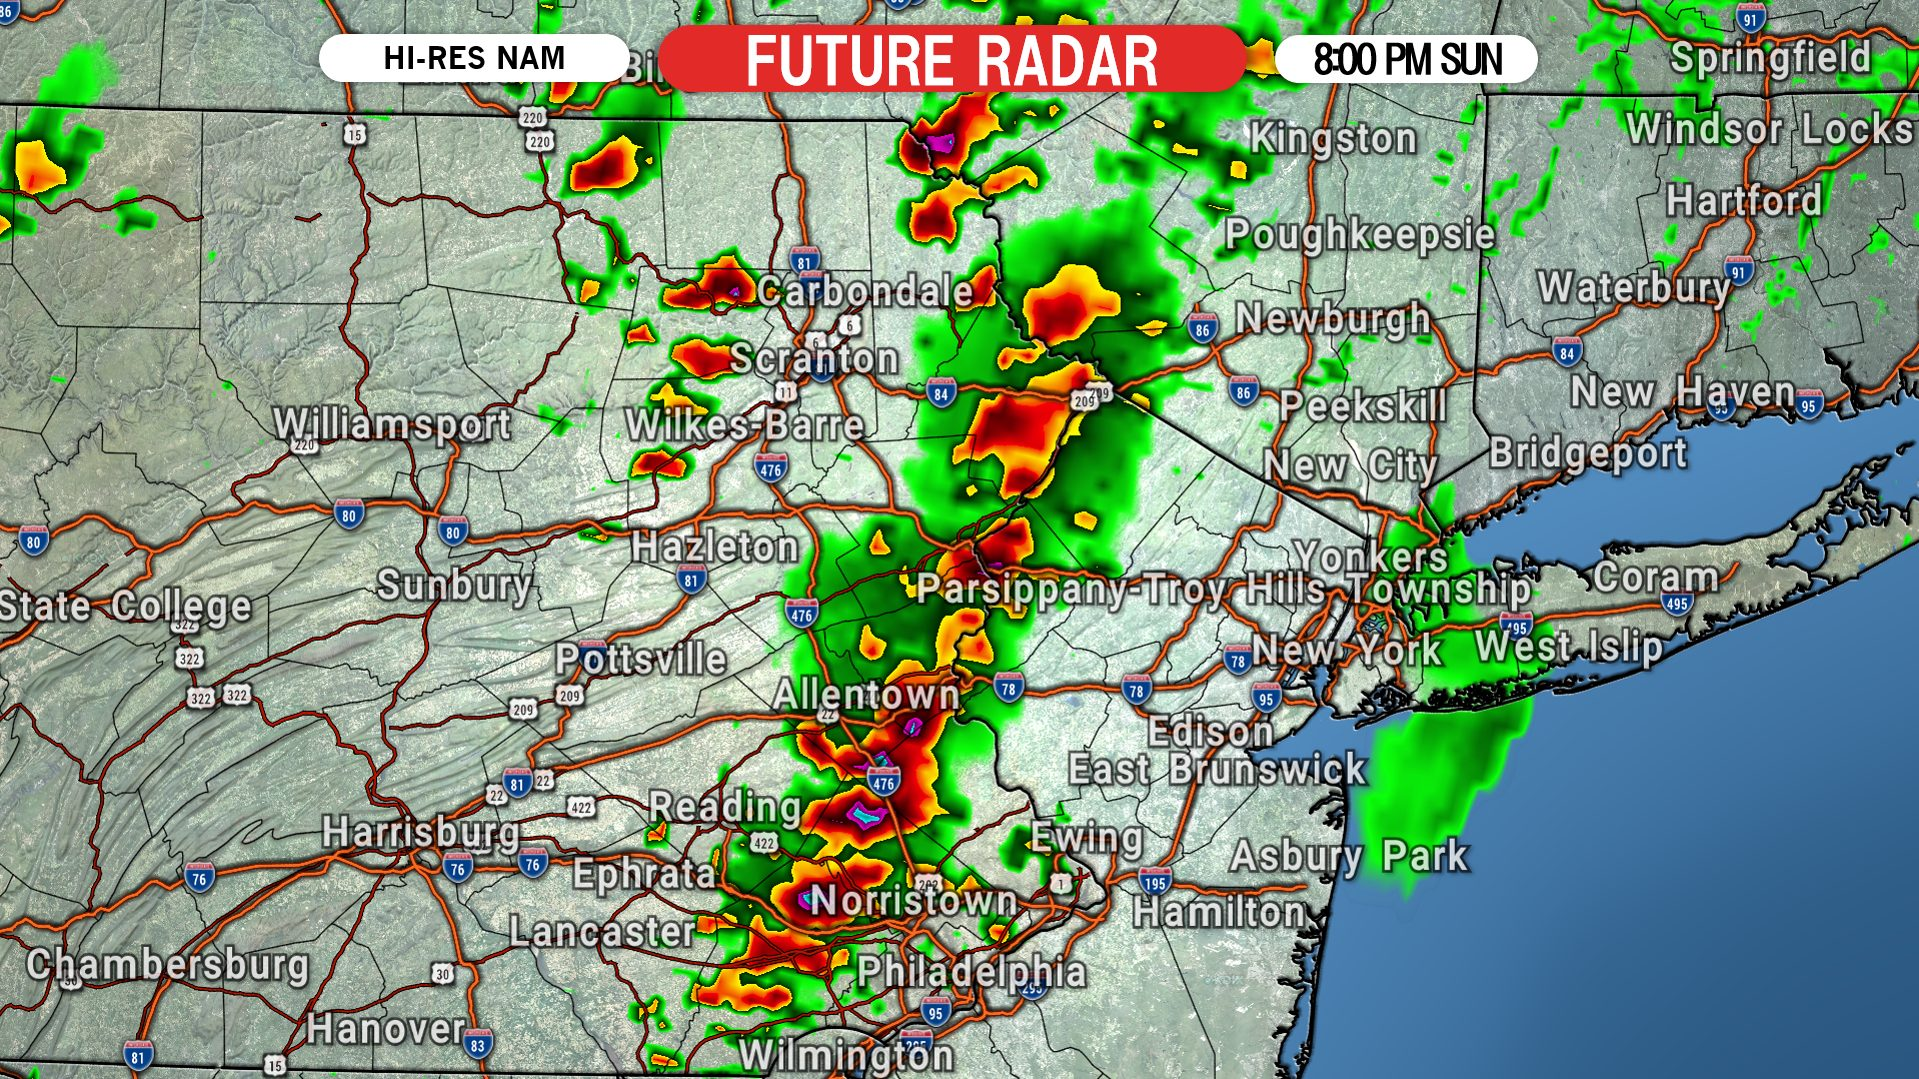 severe thunderstorms with enhanced tornado threat possible